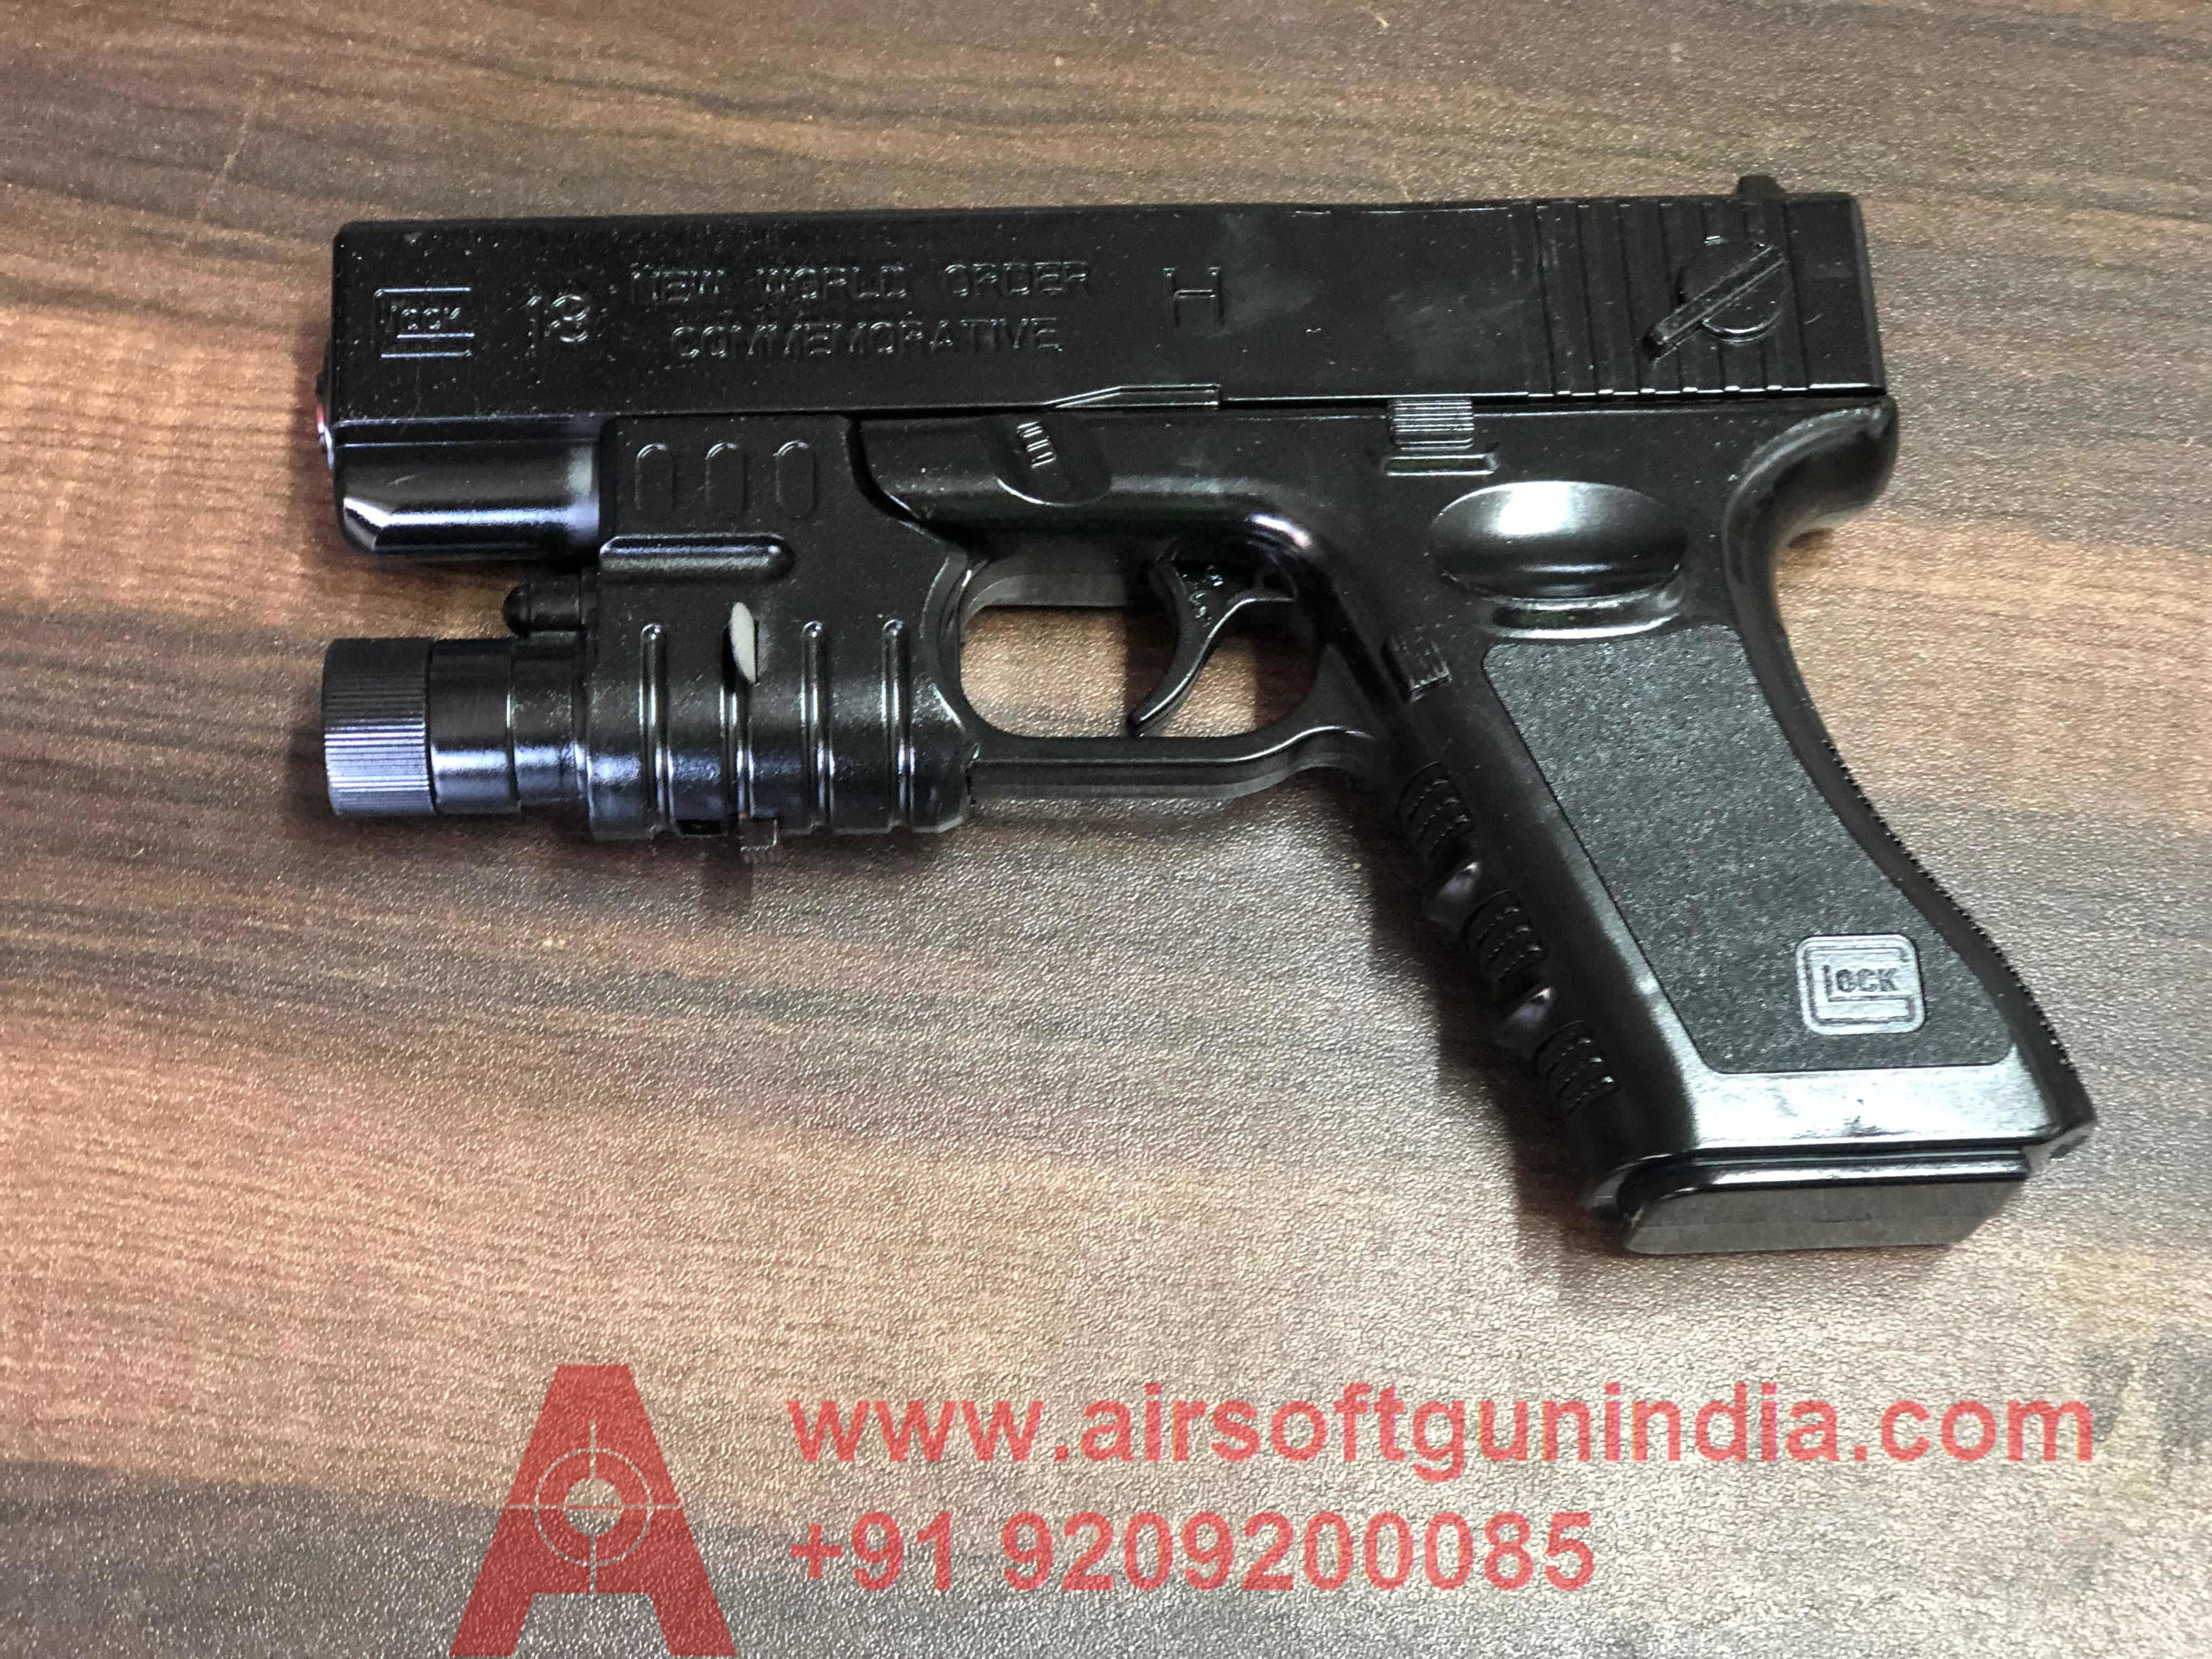 Glock 17 Spring Airsoft Pistol By Airsoft Gun India